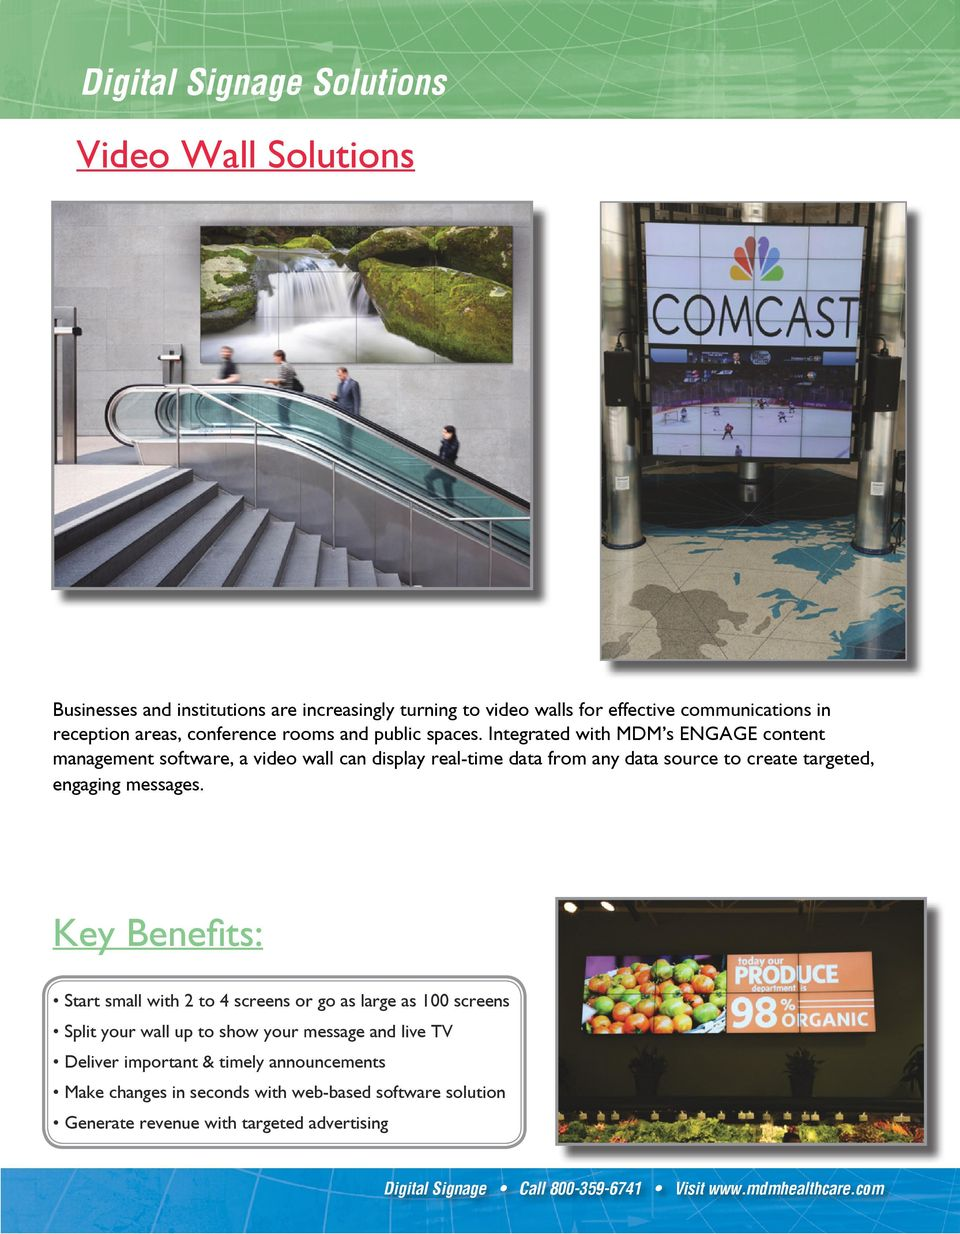 Integrated with MDM s ENGAGE content management software, a video wall can display real-time data from any data source to create targeted, engaging messages.